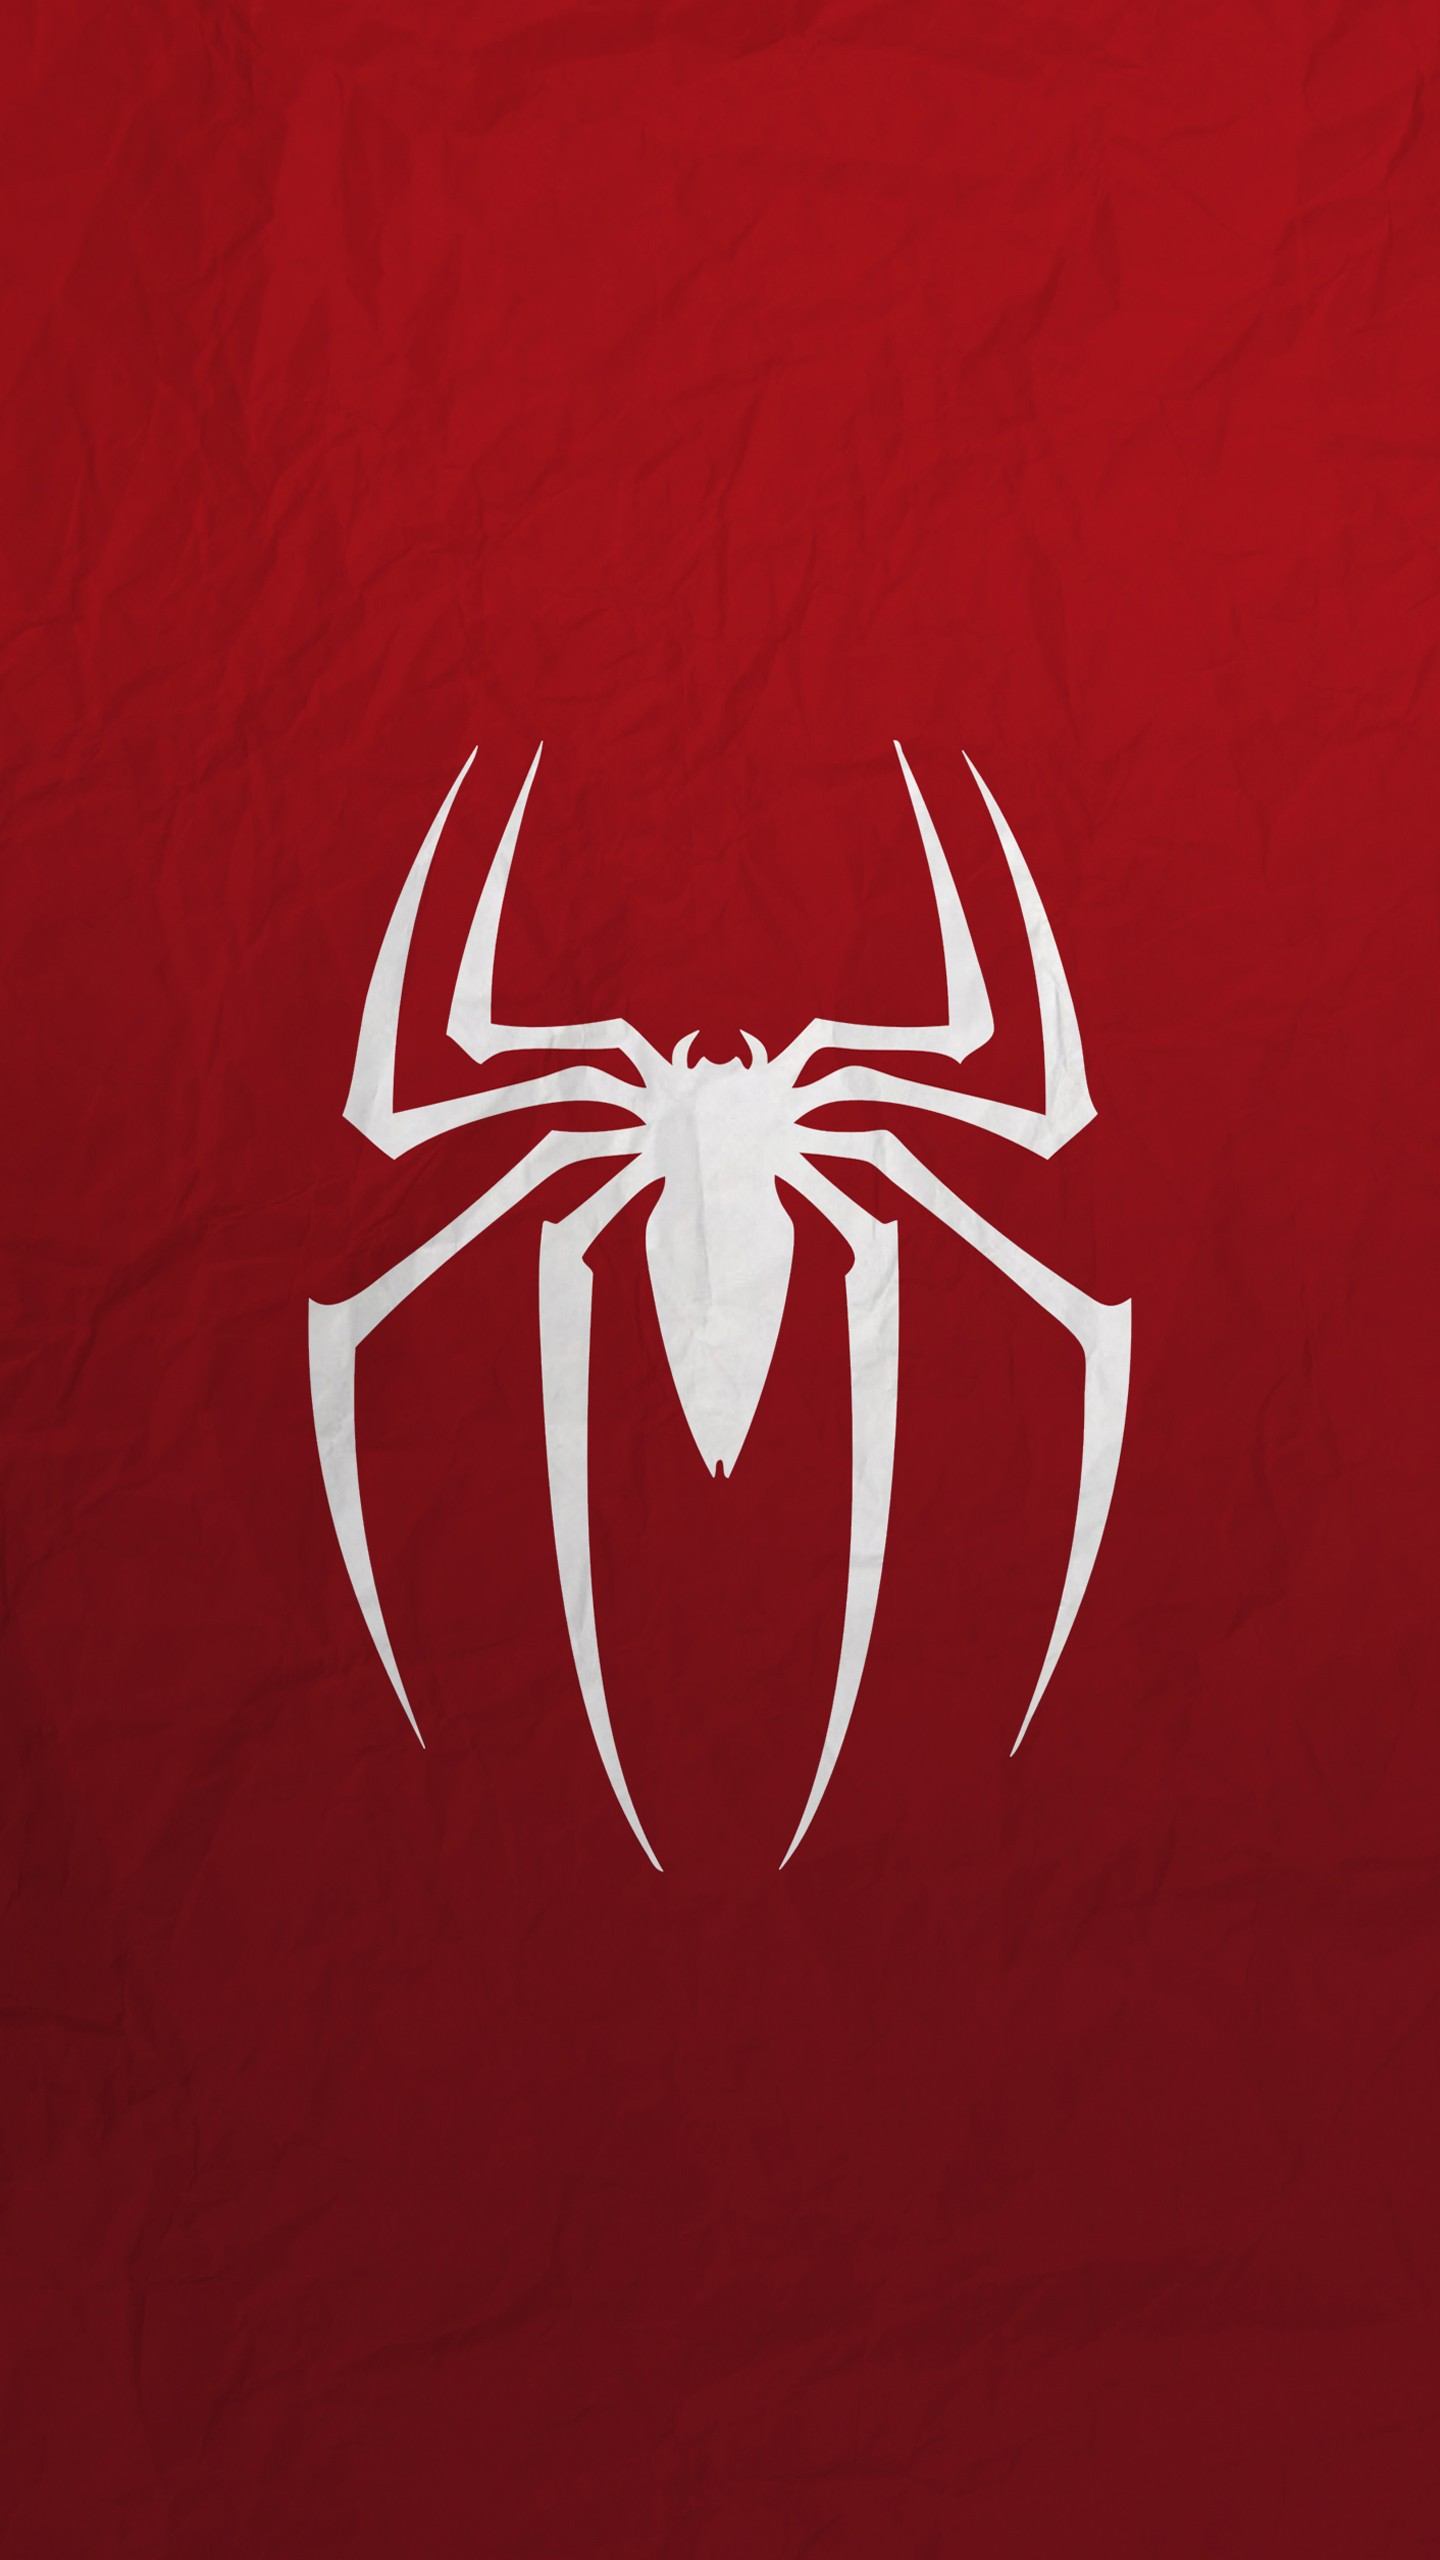 Free Download Superhero Wallpapers Hd 1440x2560 For Your